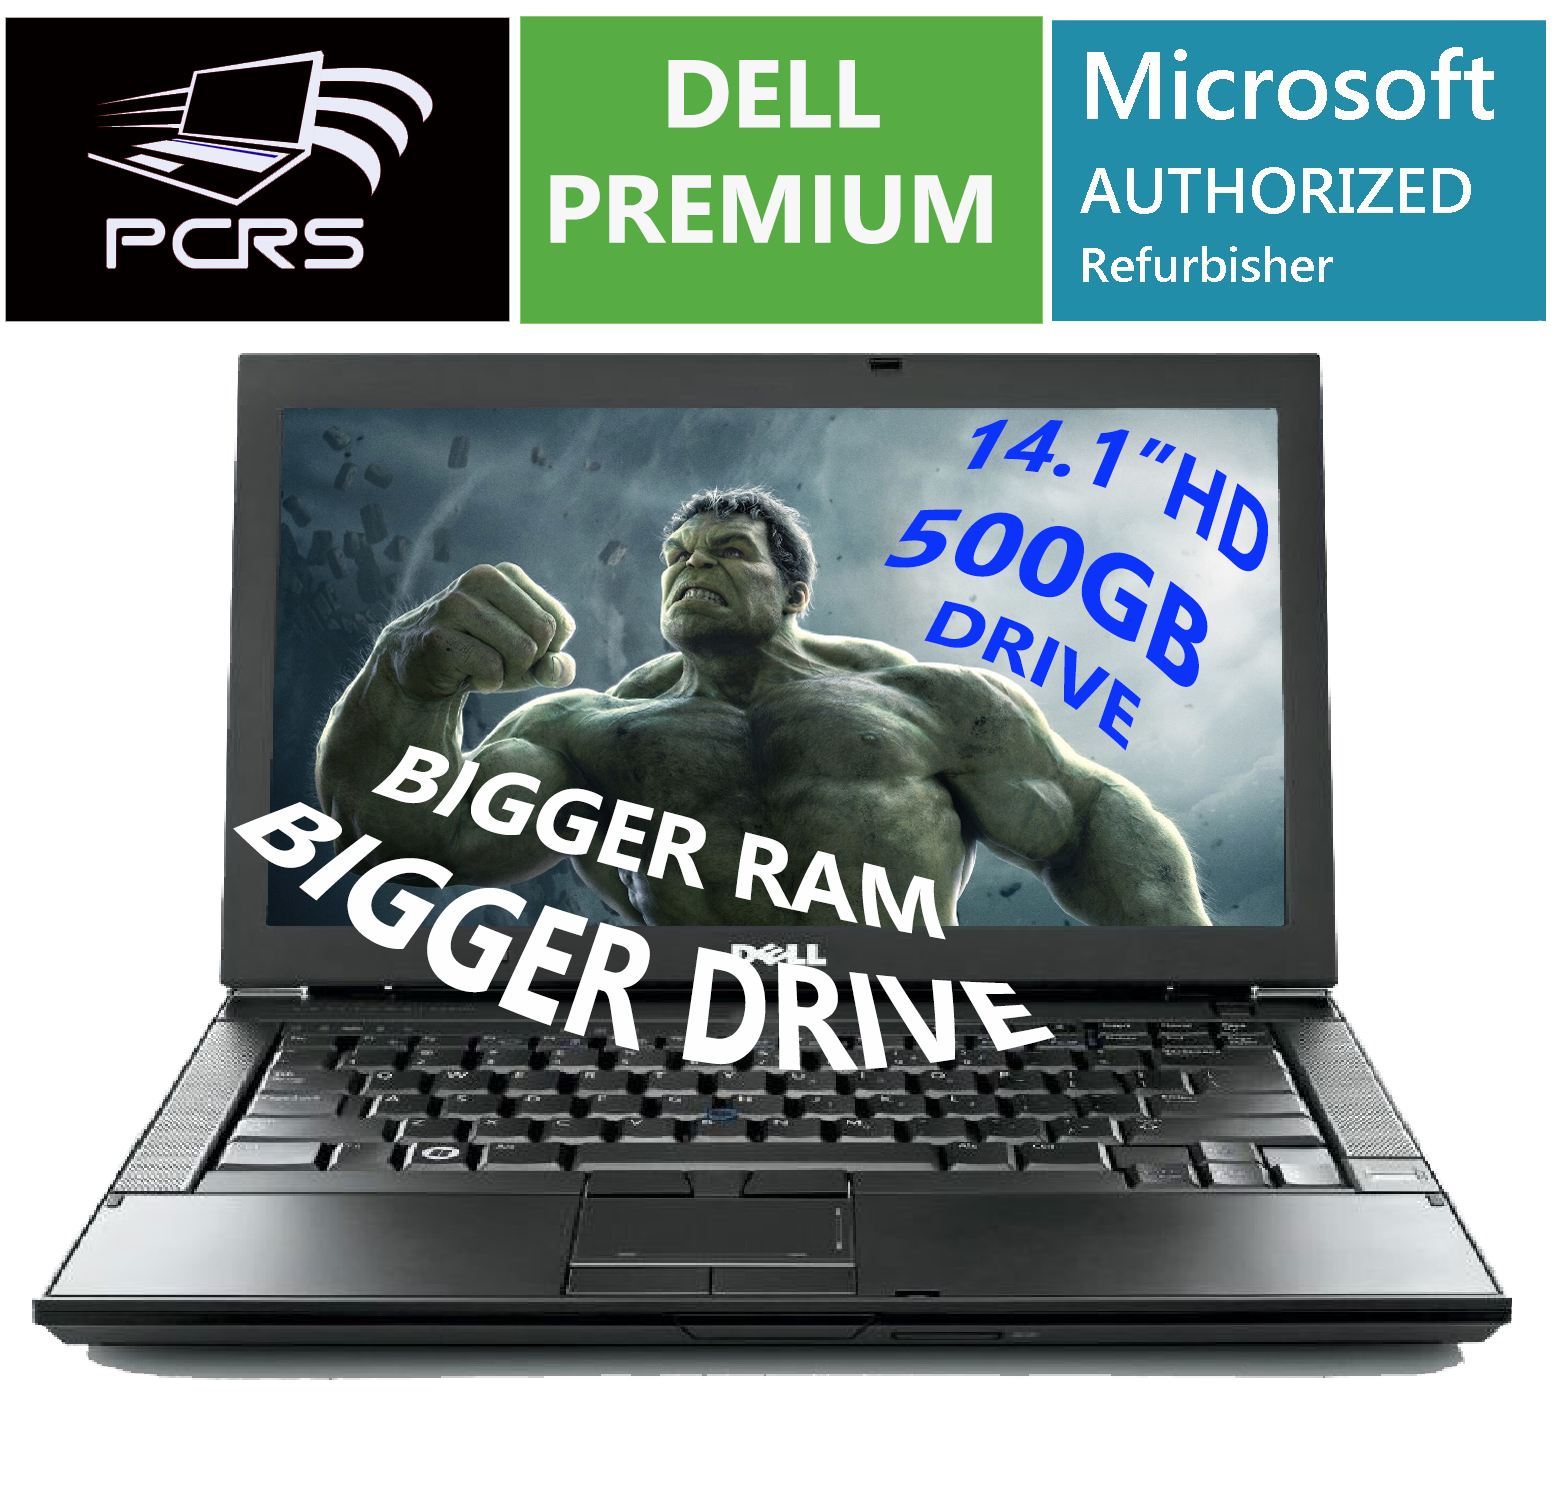 "Laptop Windows - DELL 14.1"" Latitude Laptop  Intel Core 2.4GHz 4GB RAM 500GB HDD DVDRW Windows 10"